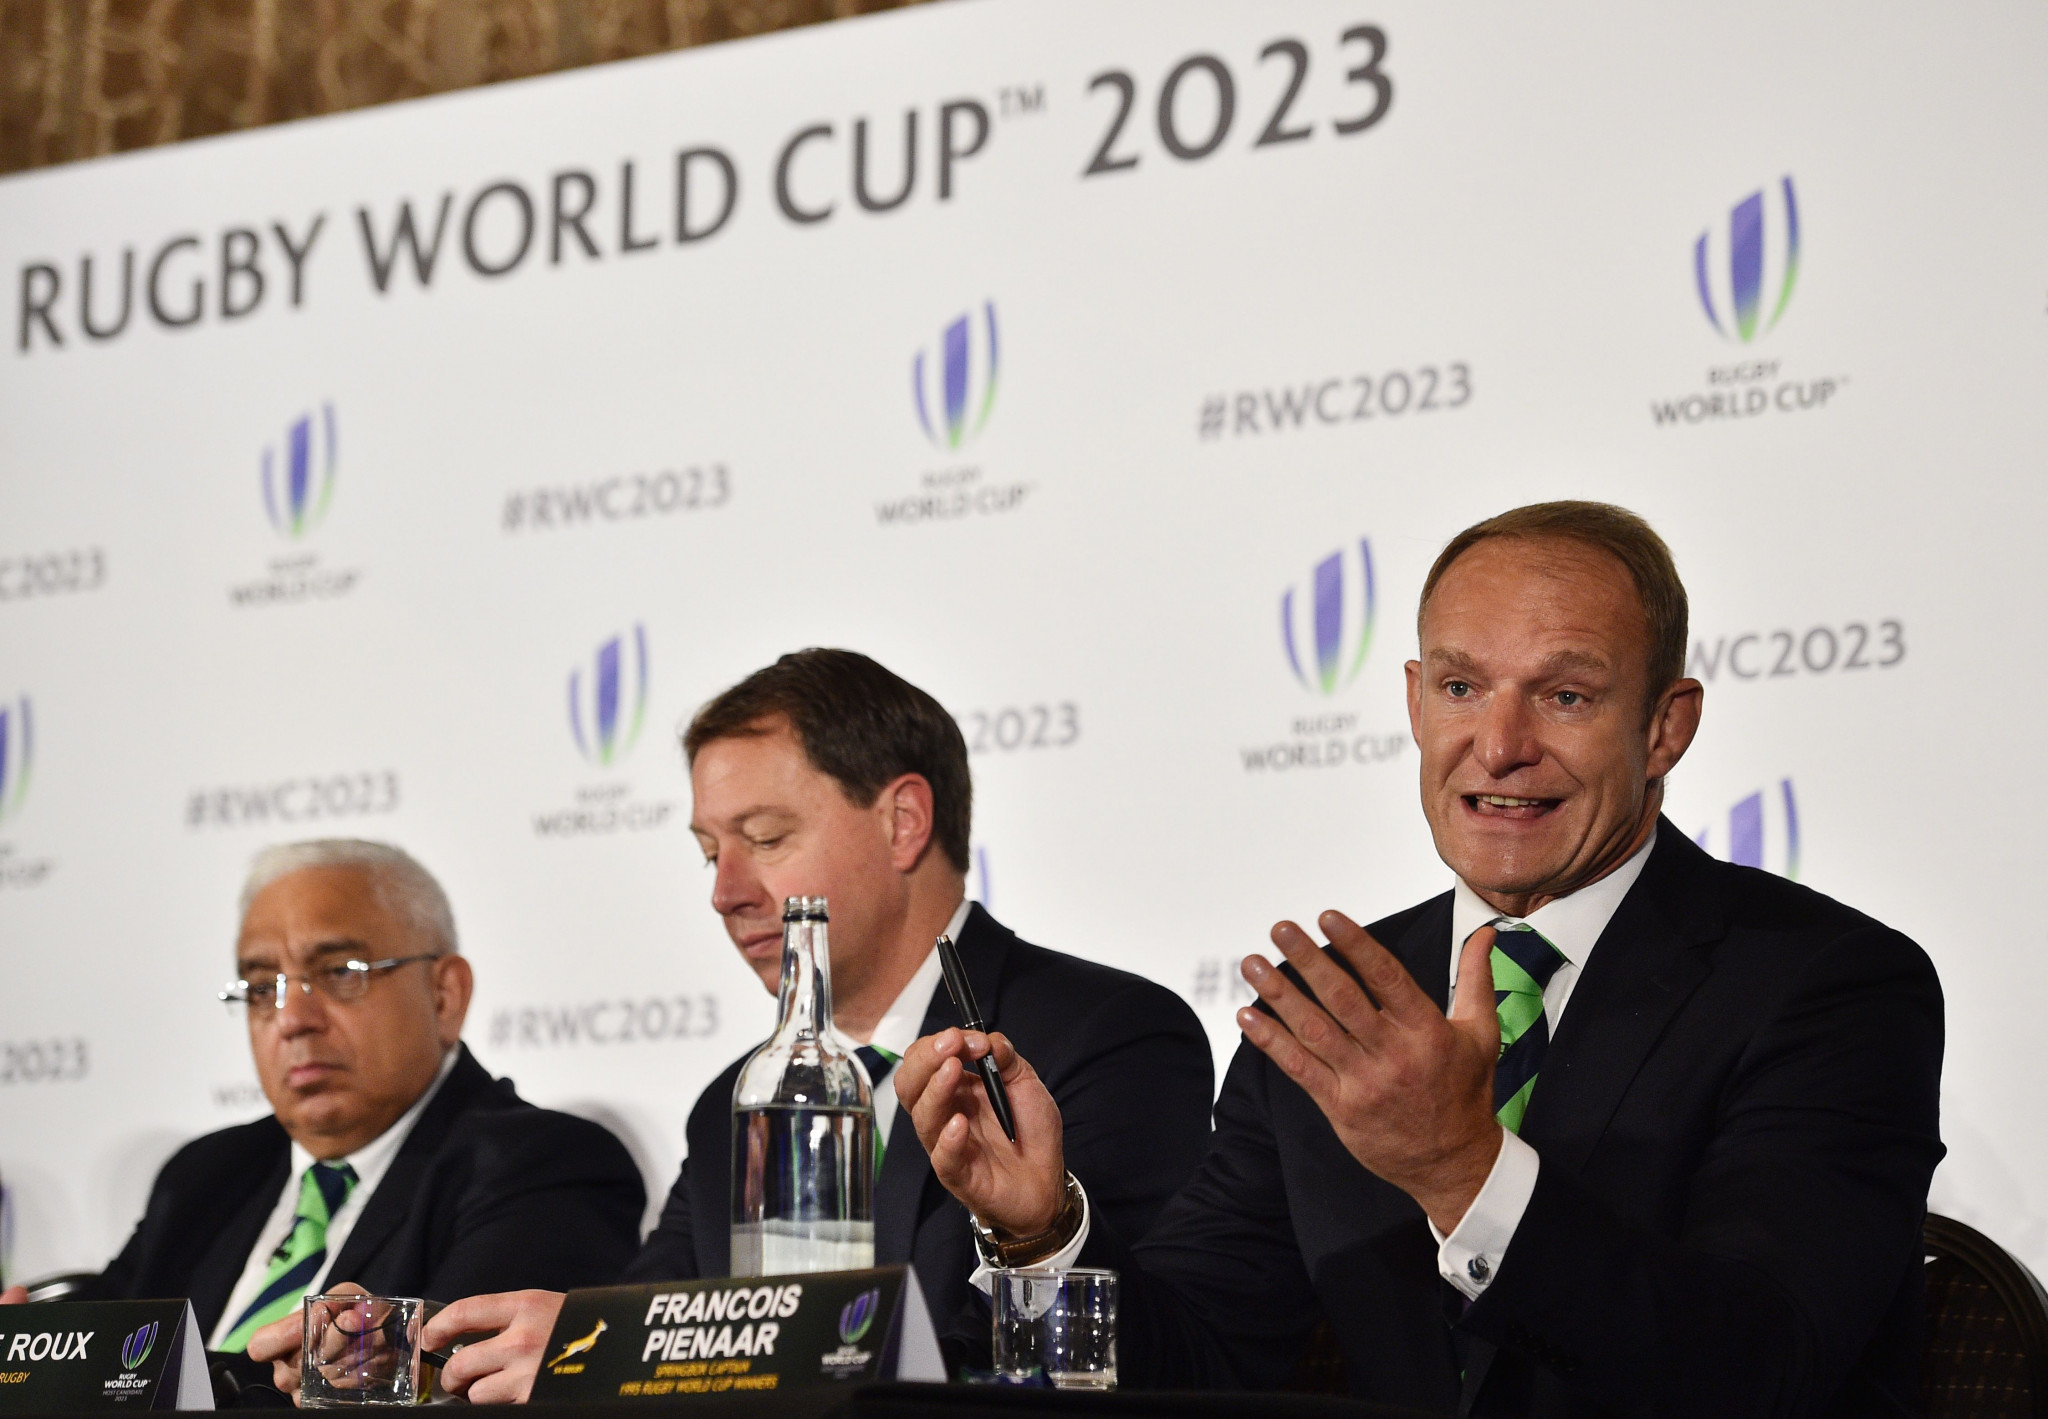 Former South Africa captain and 1995 Rugby World Cup winner Francois Pienaar is poised to hear if the Springboks will host the 2023 tournament ©Getty Images